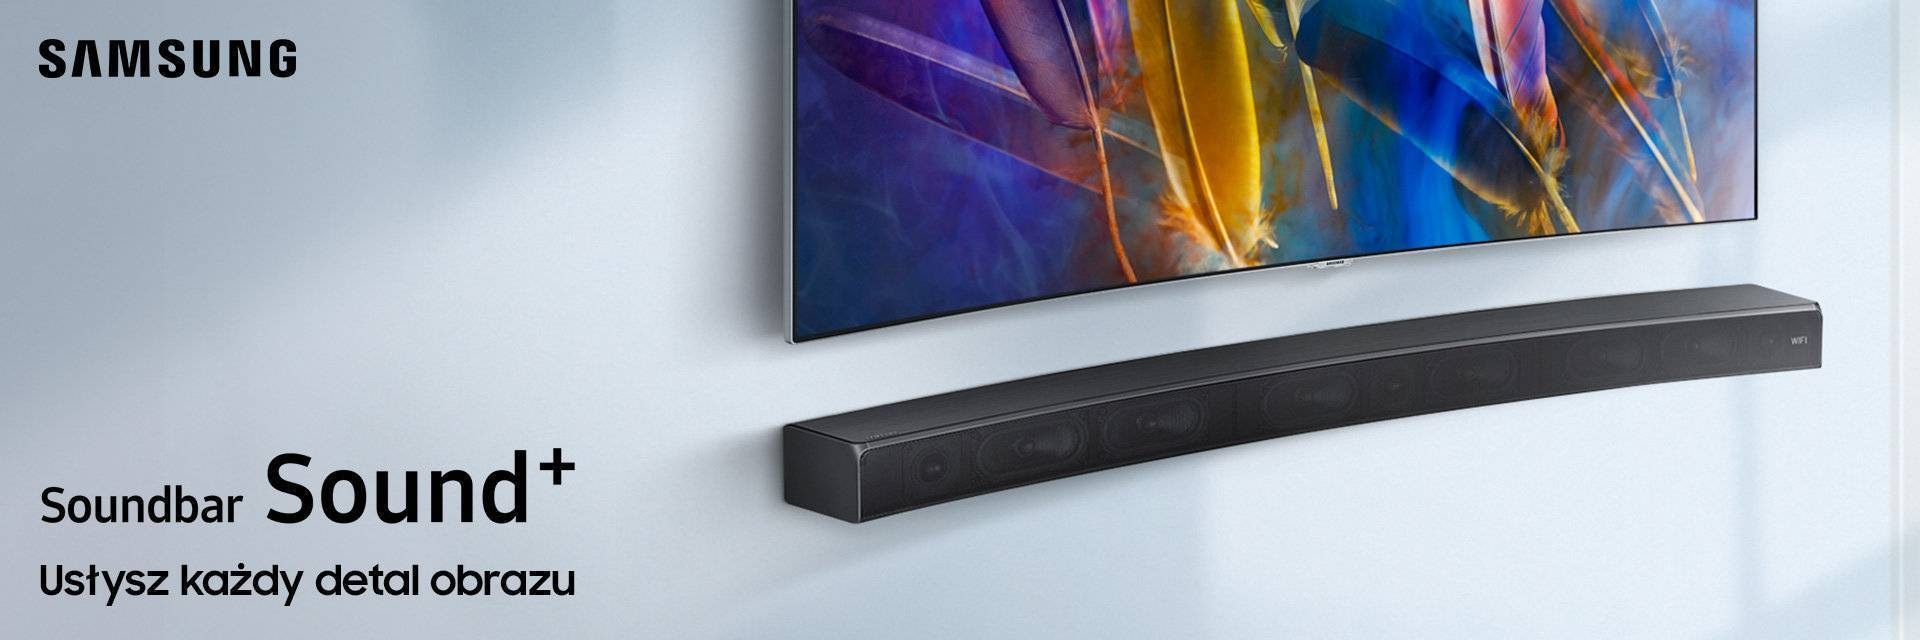 Samsung Soundbar Ms6500 Kv 1920x640